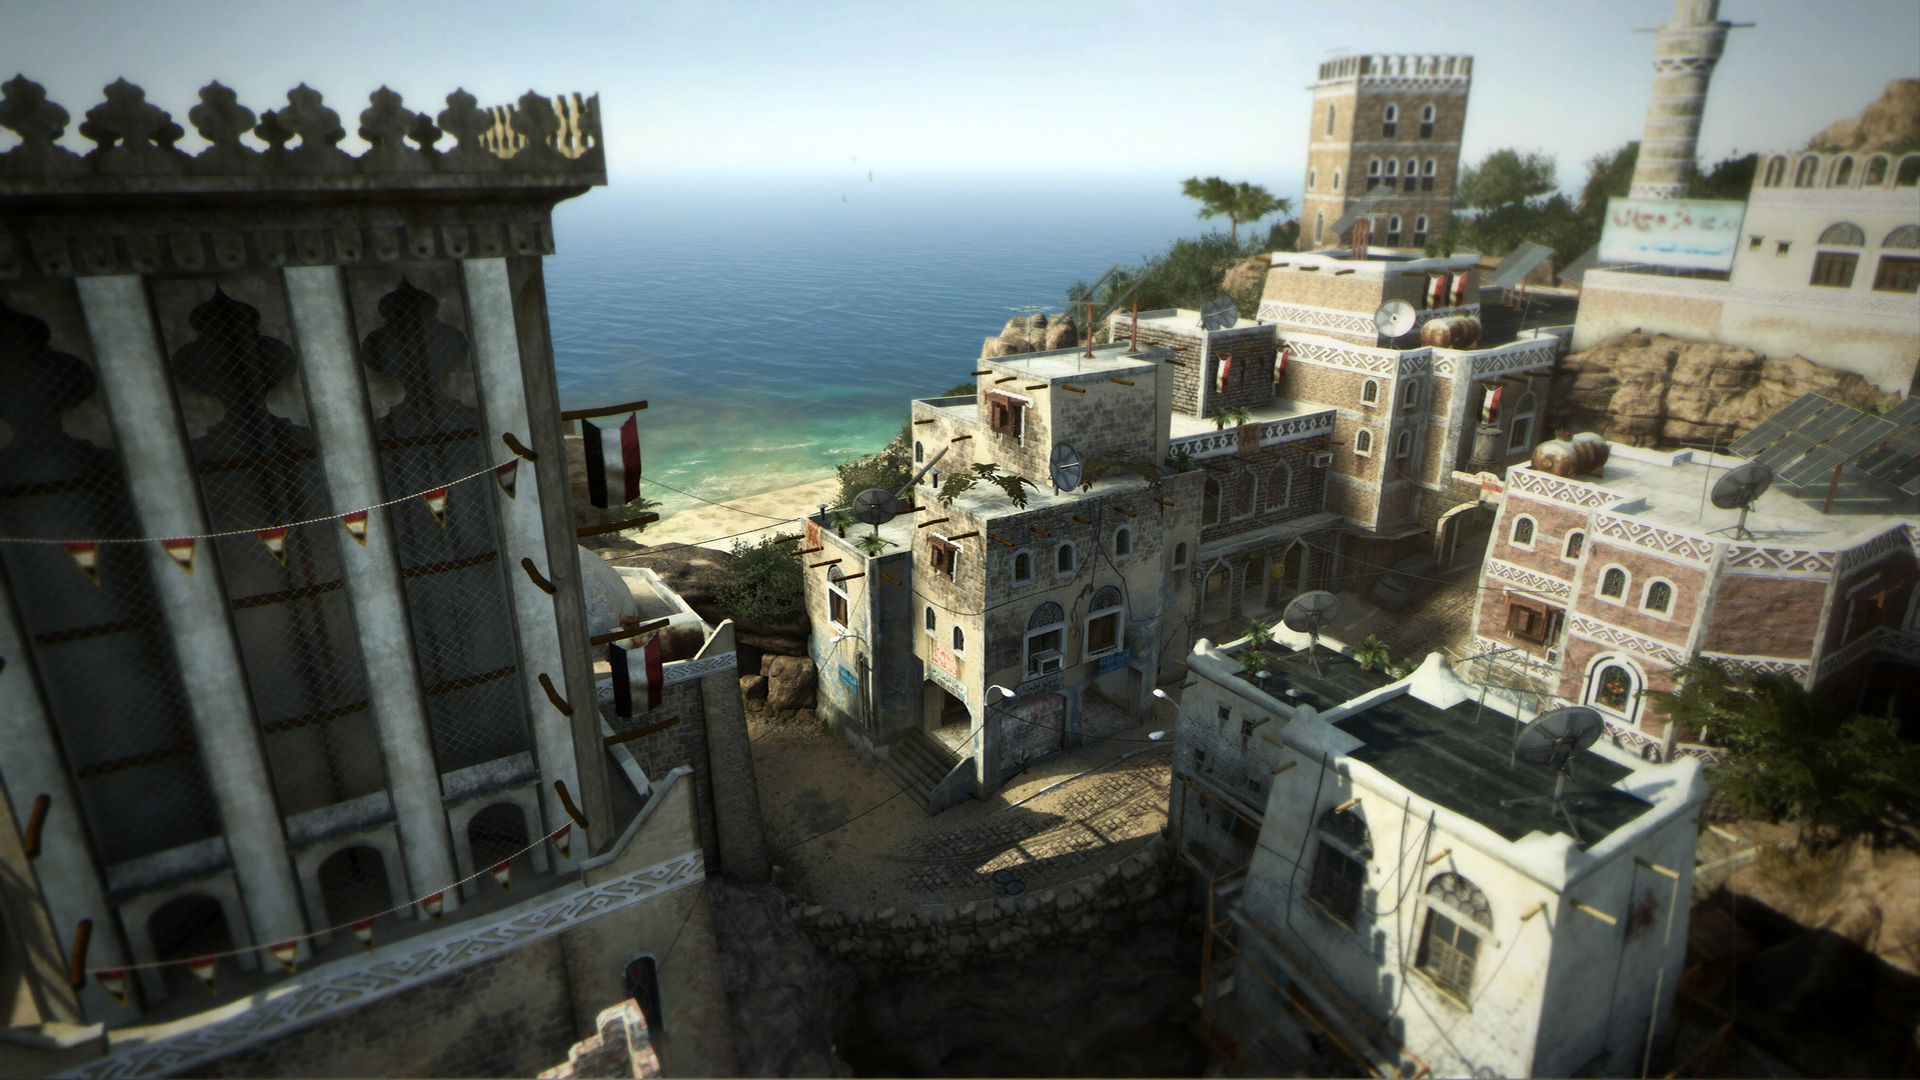 Yemen (map) | Call of Duty Wiki | FANDOM powered by Wikia on